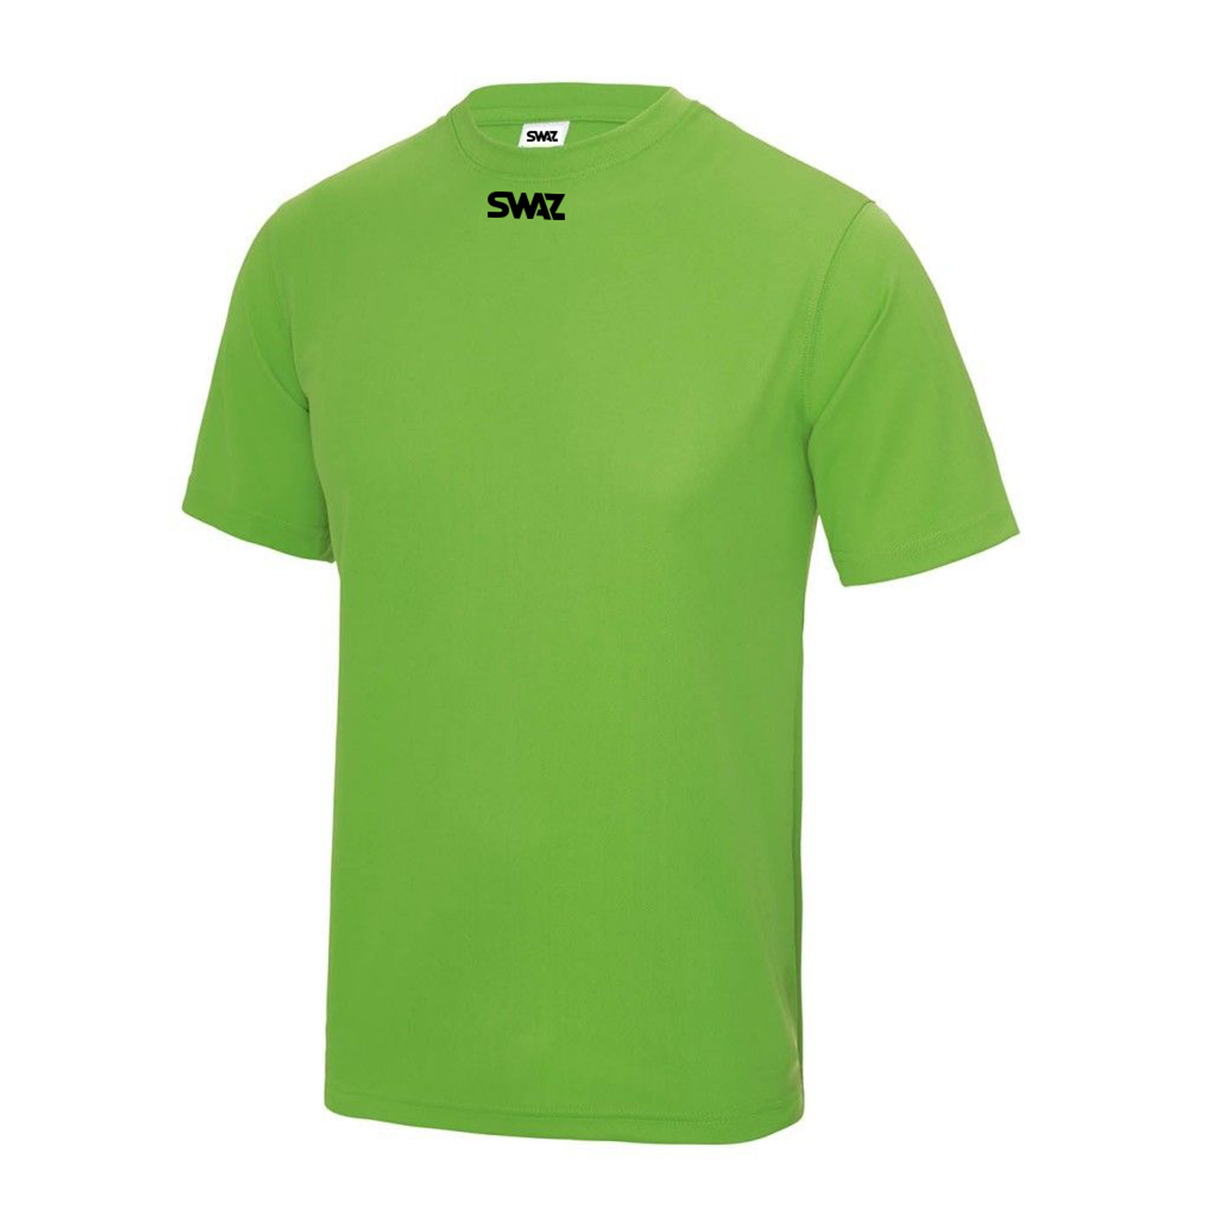 SWAZ Youth Club Training T-Shirt – Lime